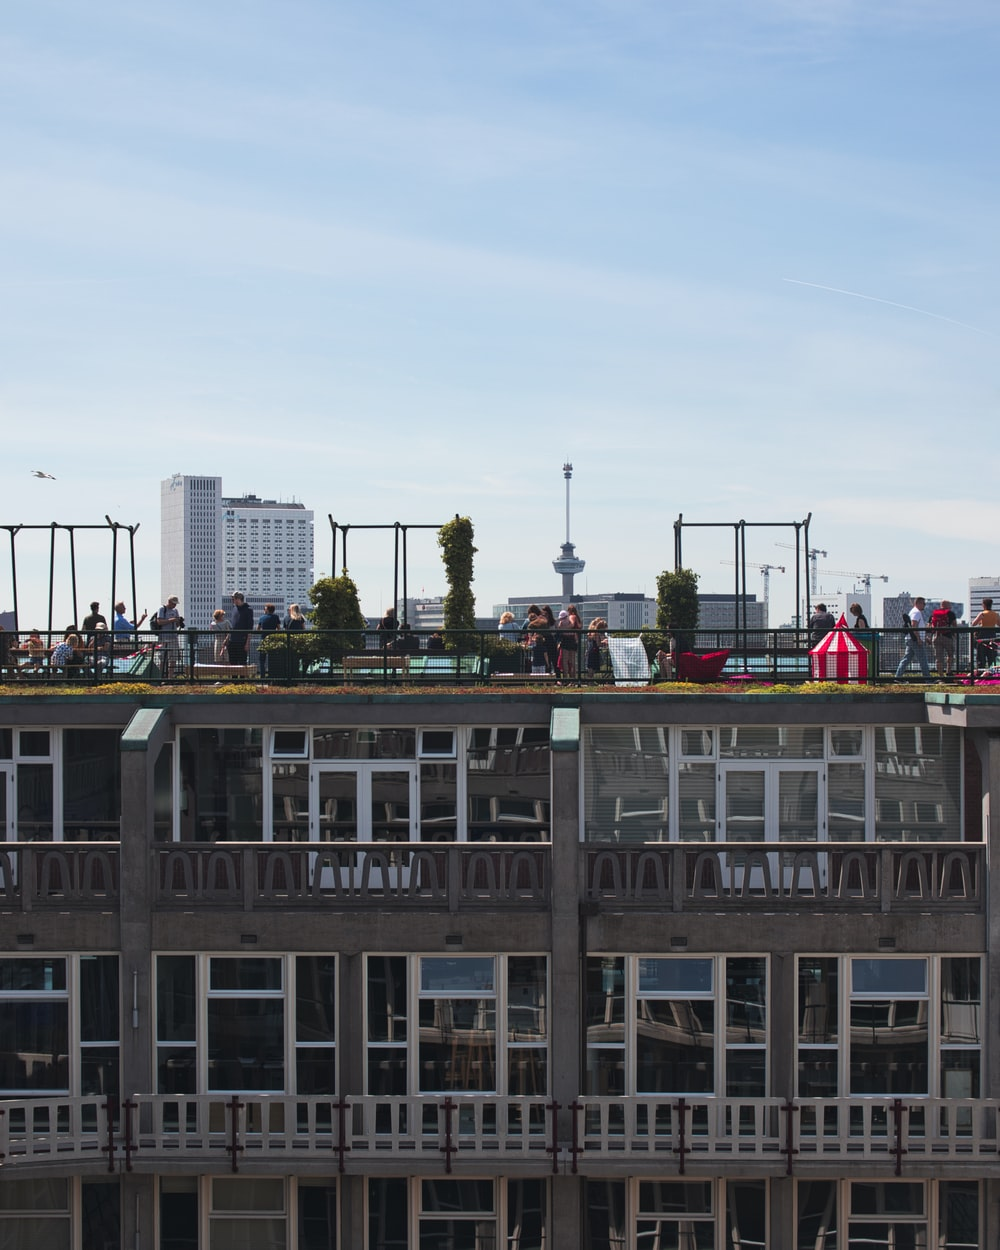 people on rooftop during daytime